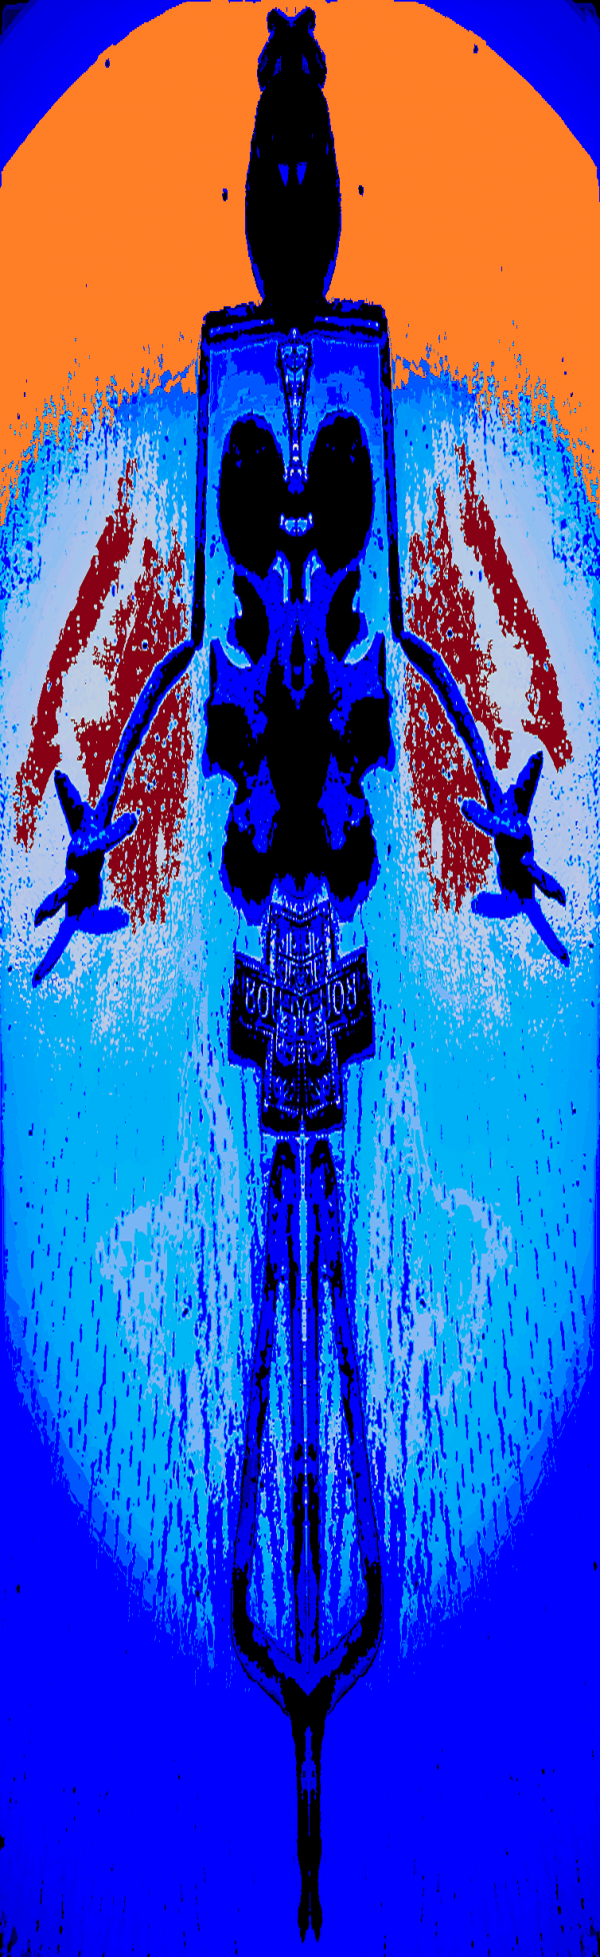 2016-09-27 00.55.28888.png